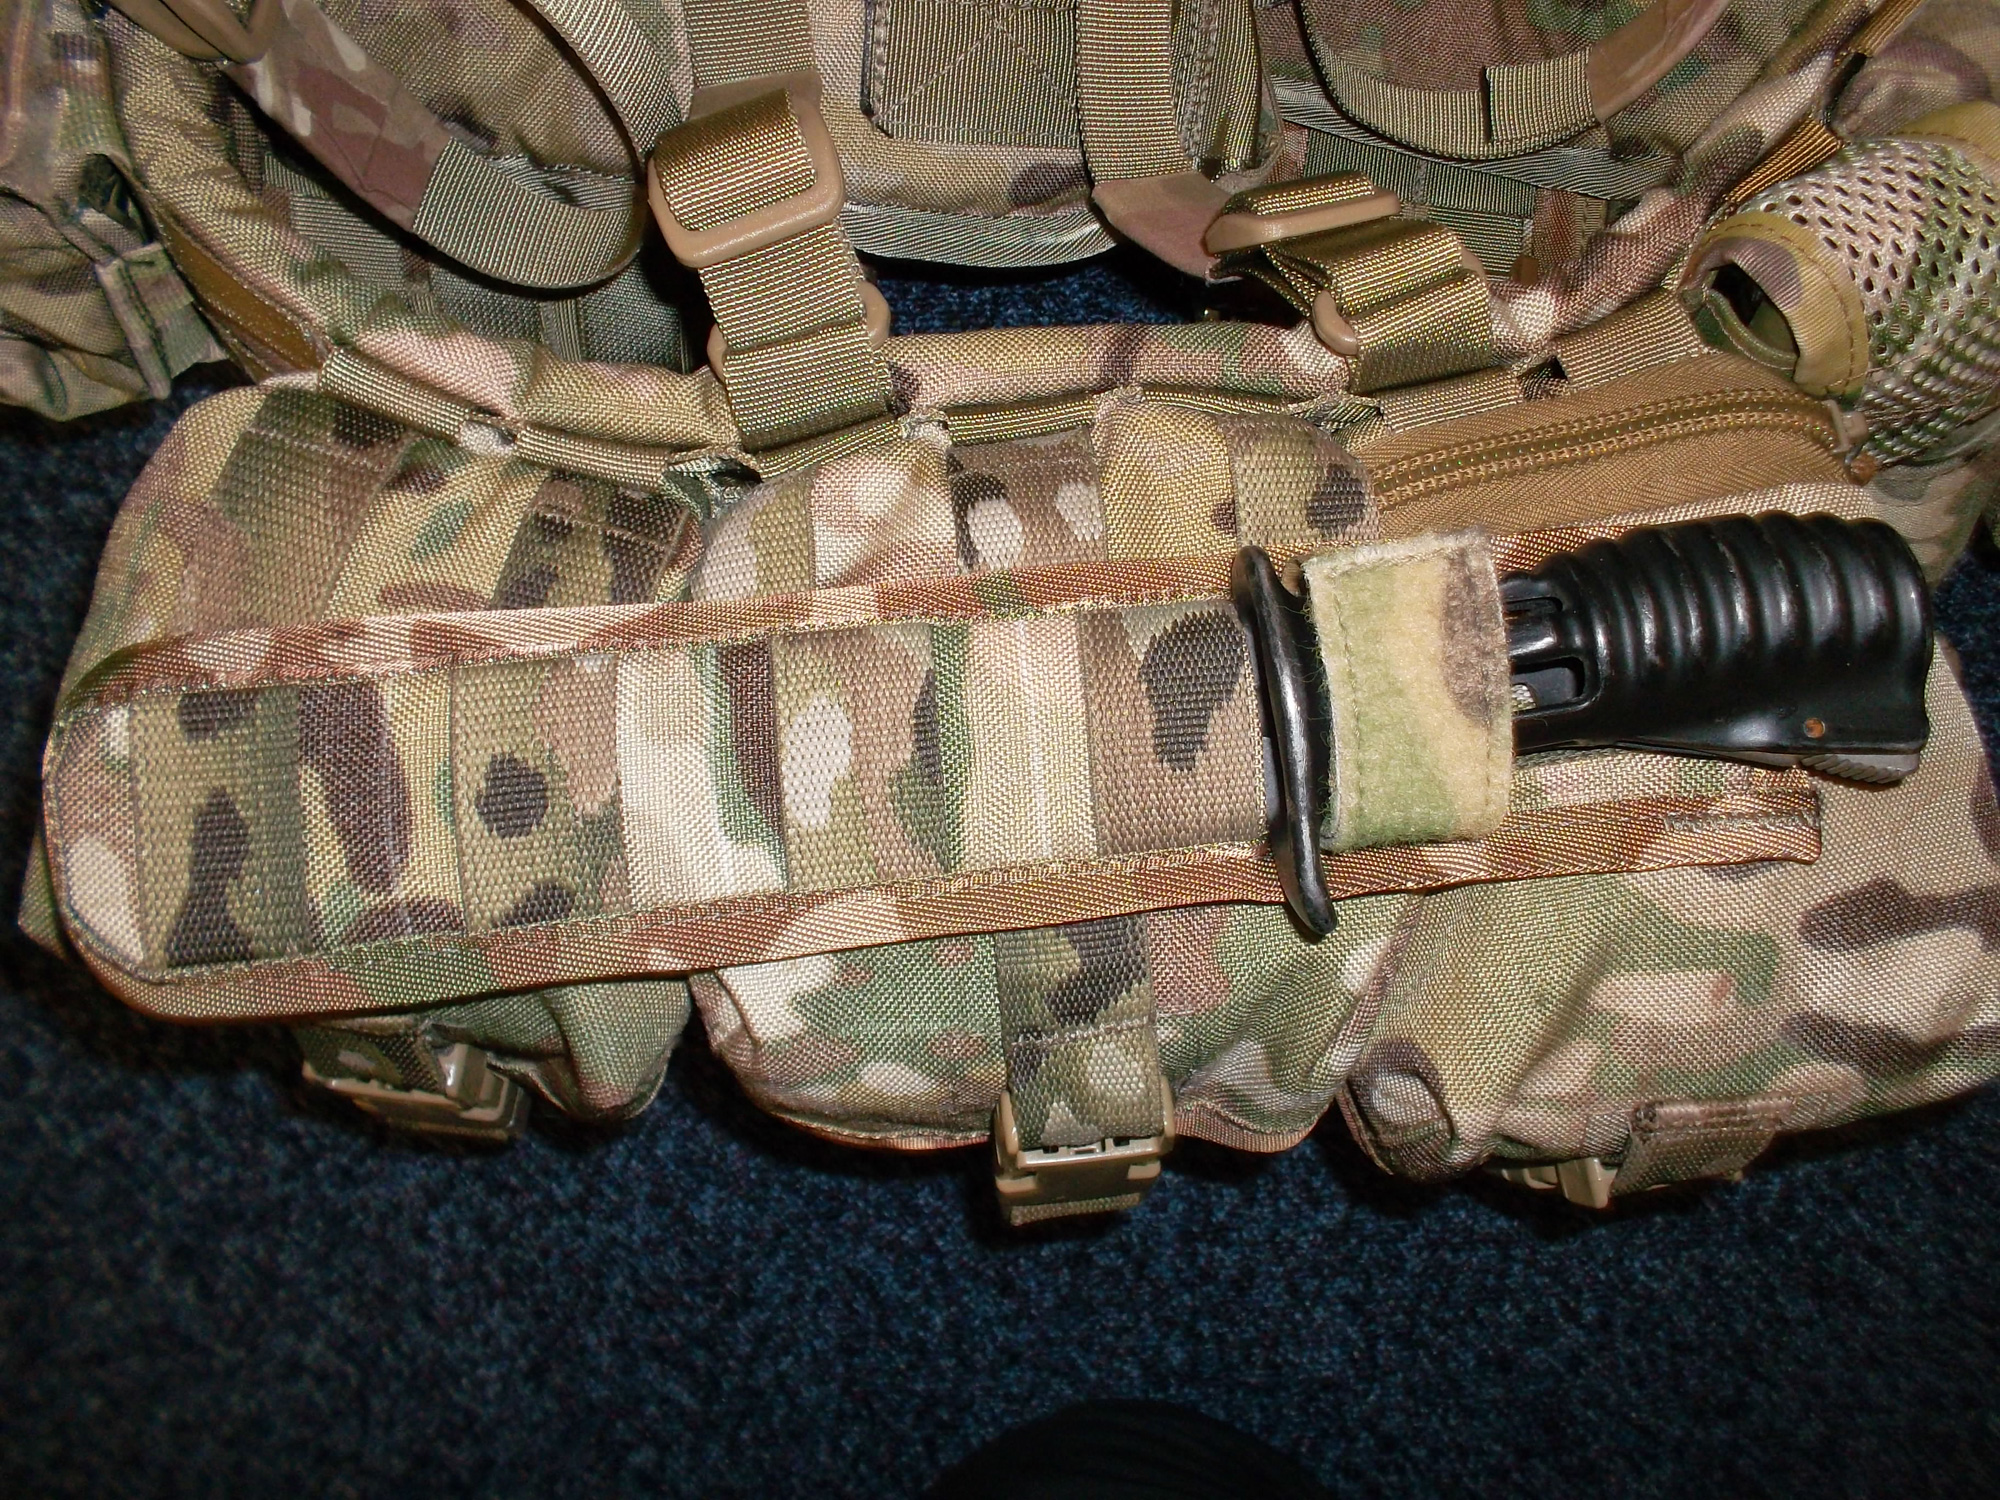 Sheath on top of pouches again.